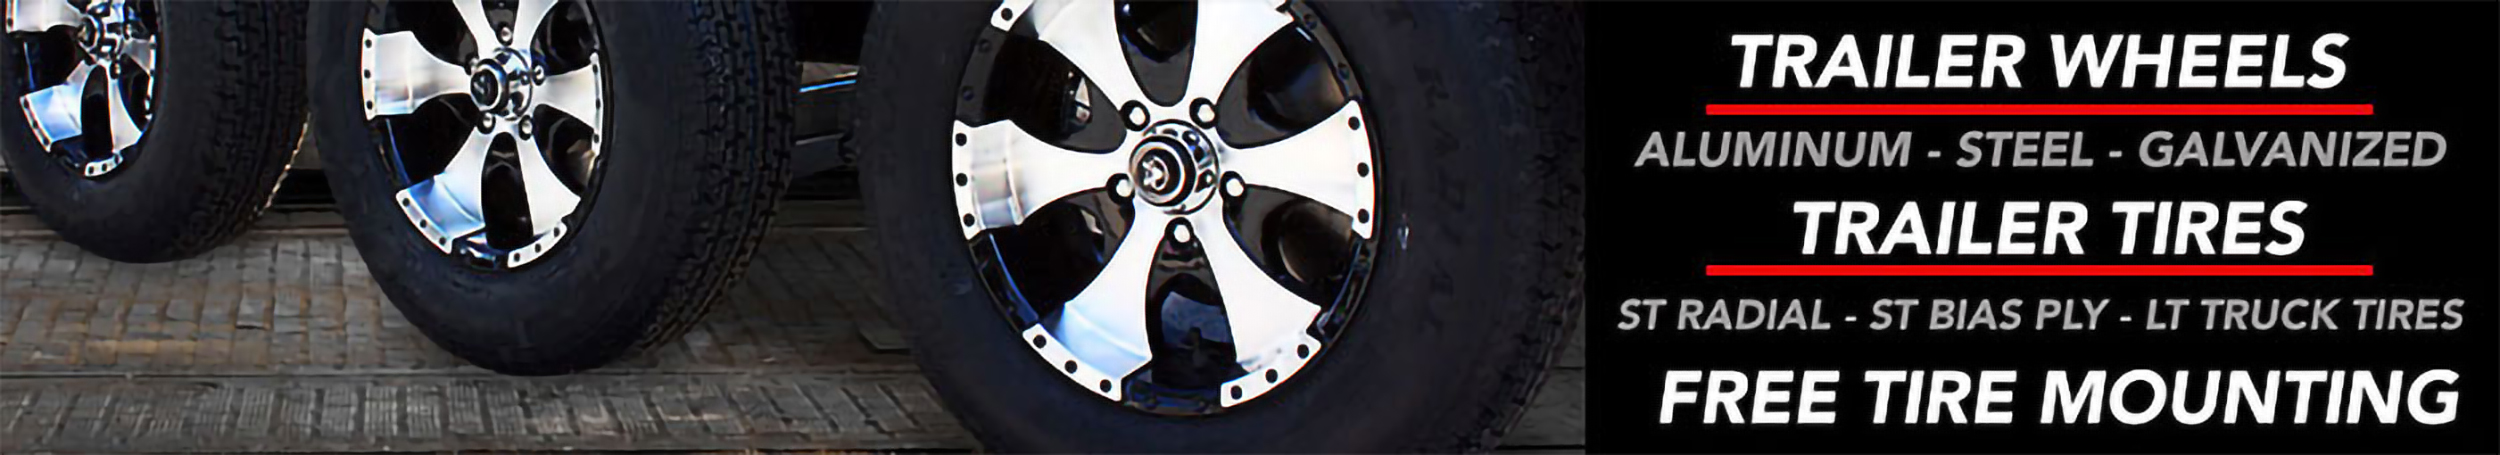 Trailer Wheels and Tires Free Shipping over $49